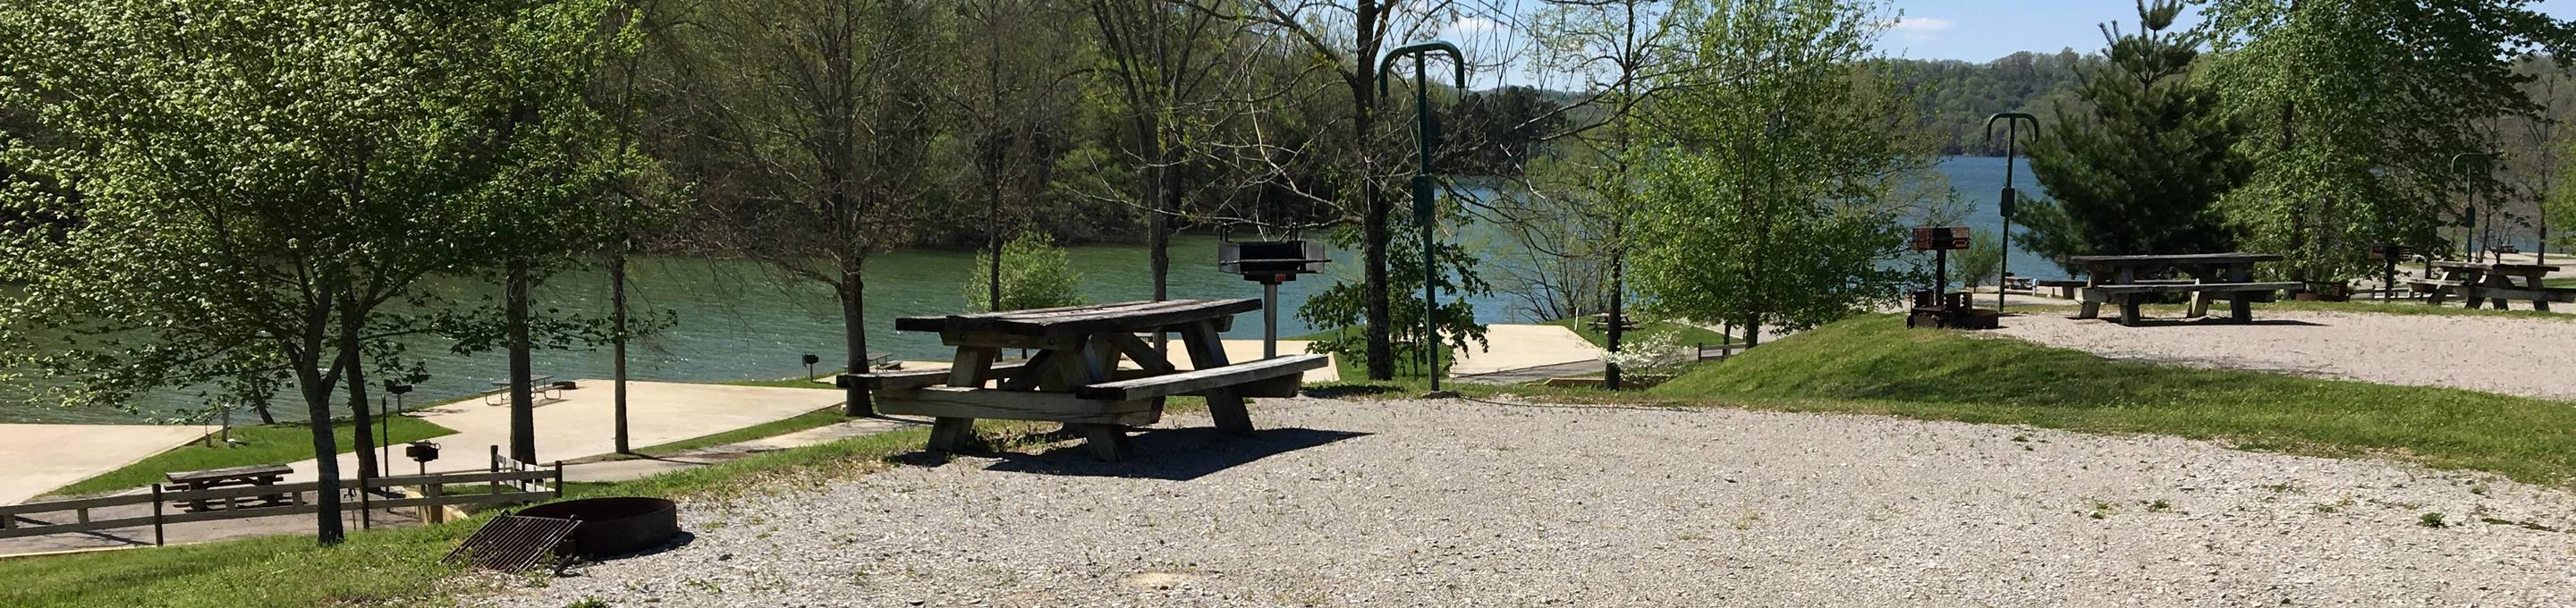 LILLYDALE CAMPGROUND SITE # 98